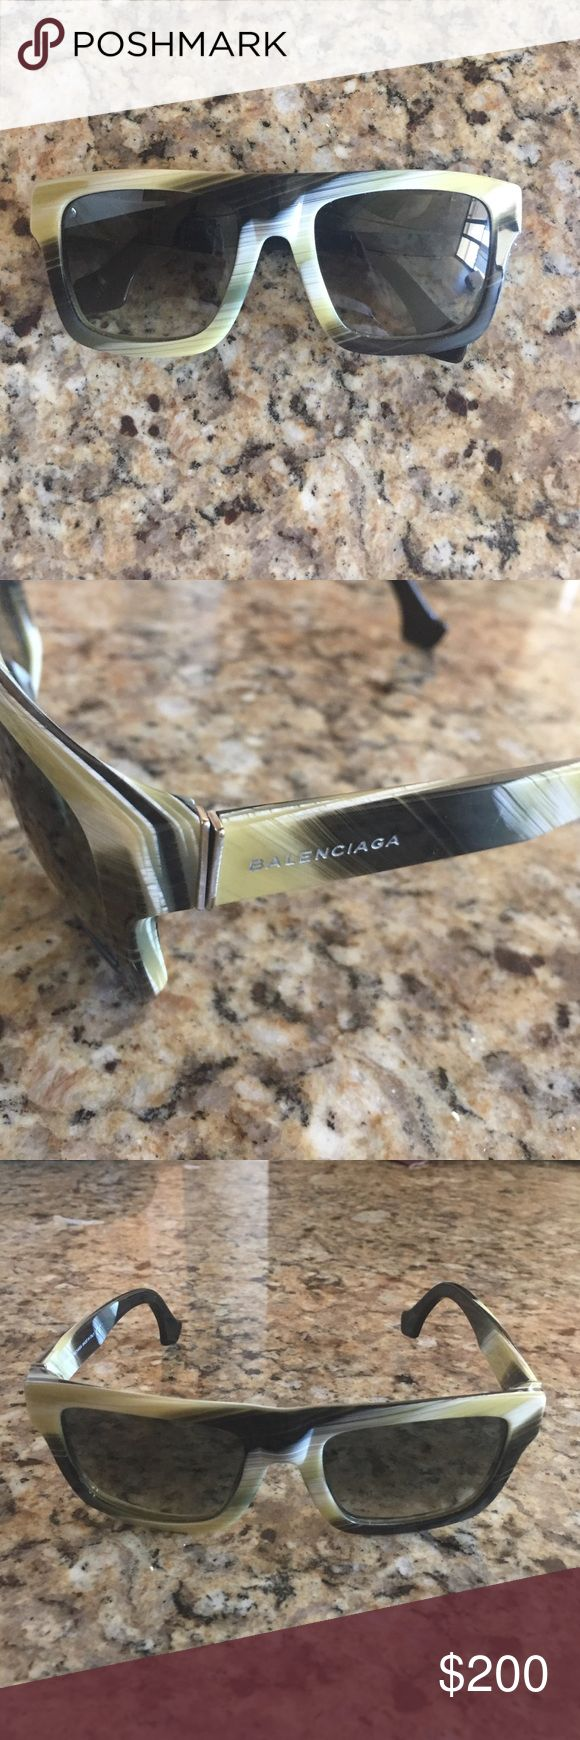 Balenciaga Sunglasses Fun Balenciaga Sunglasses. Worn once, great condition! Balenciaga Accessories Sunglasses